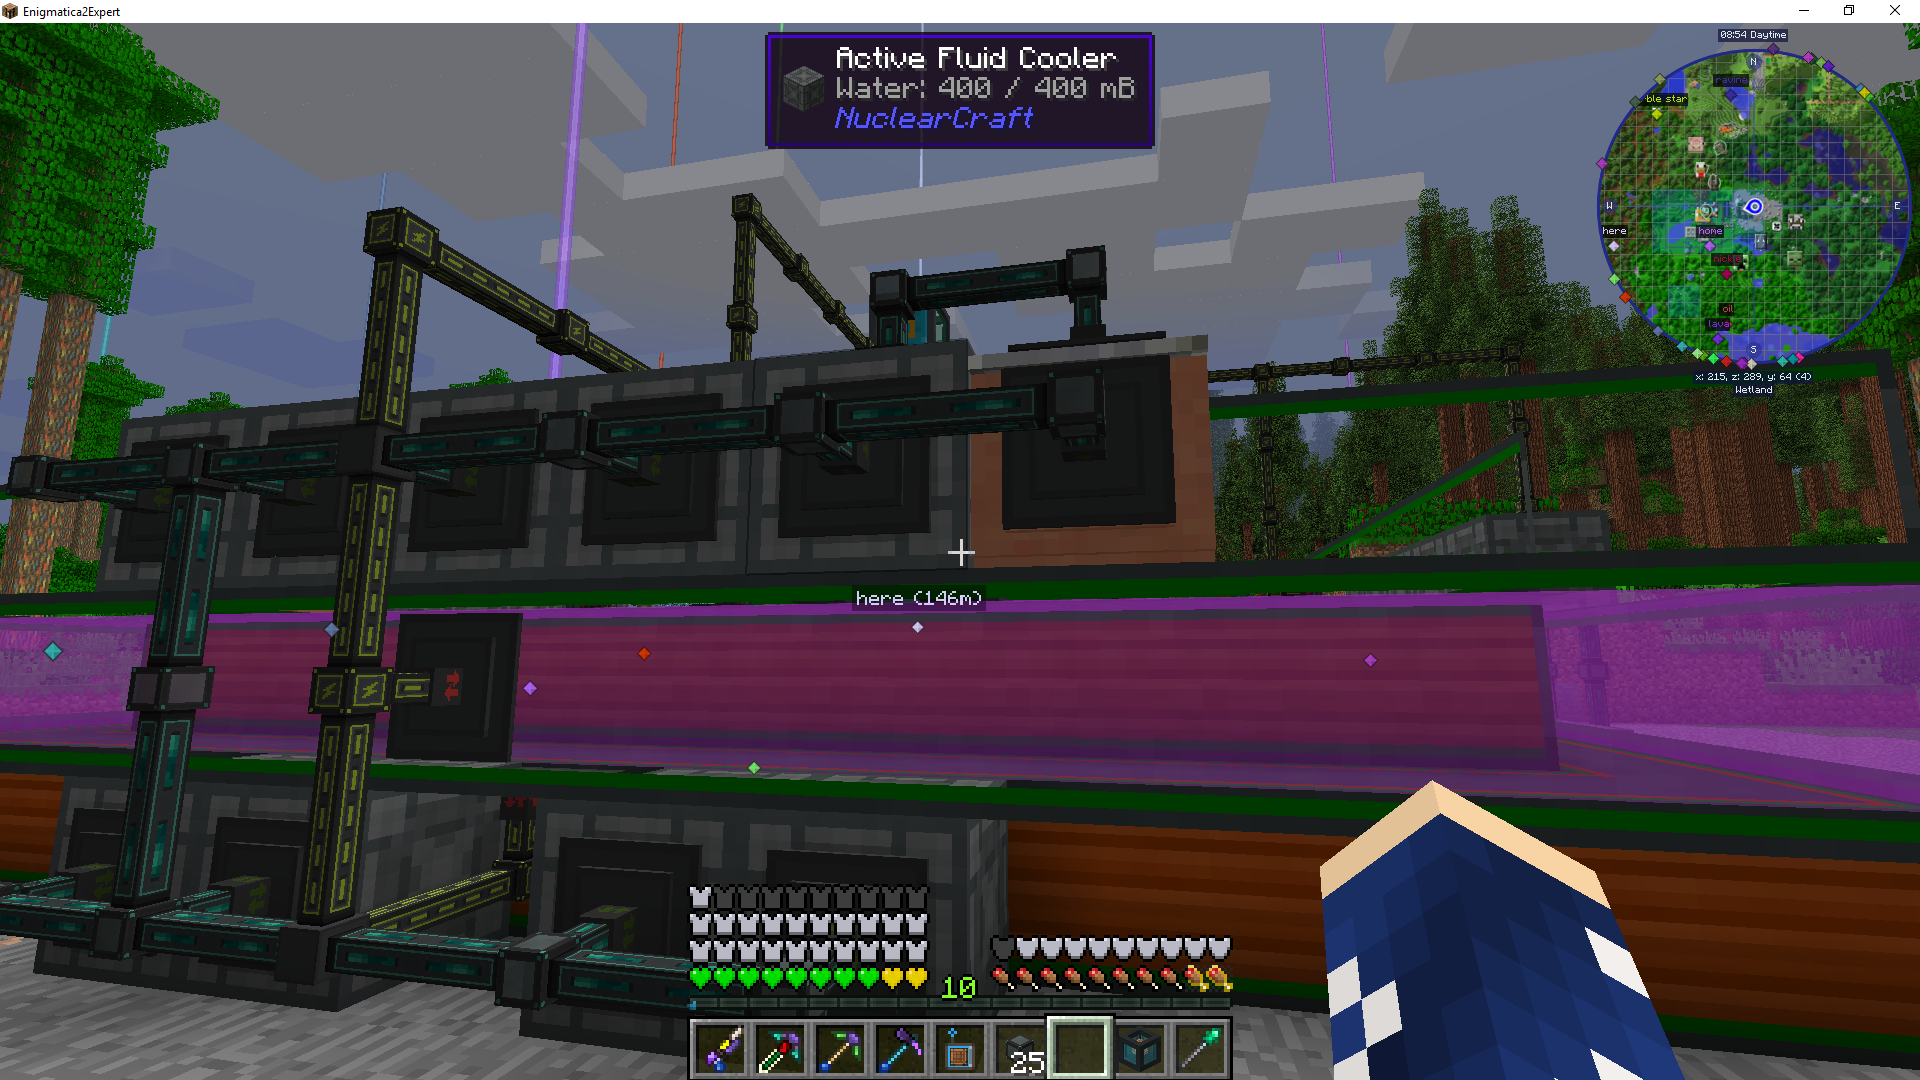 Active cooling with fusion reactor NuclearCraft seem to not